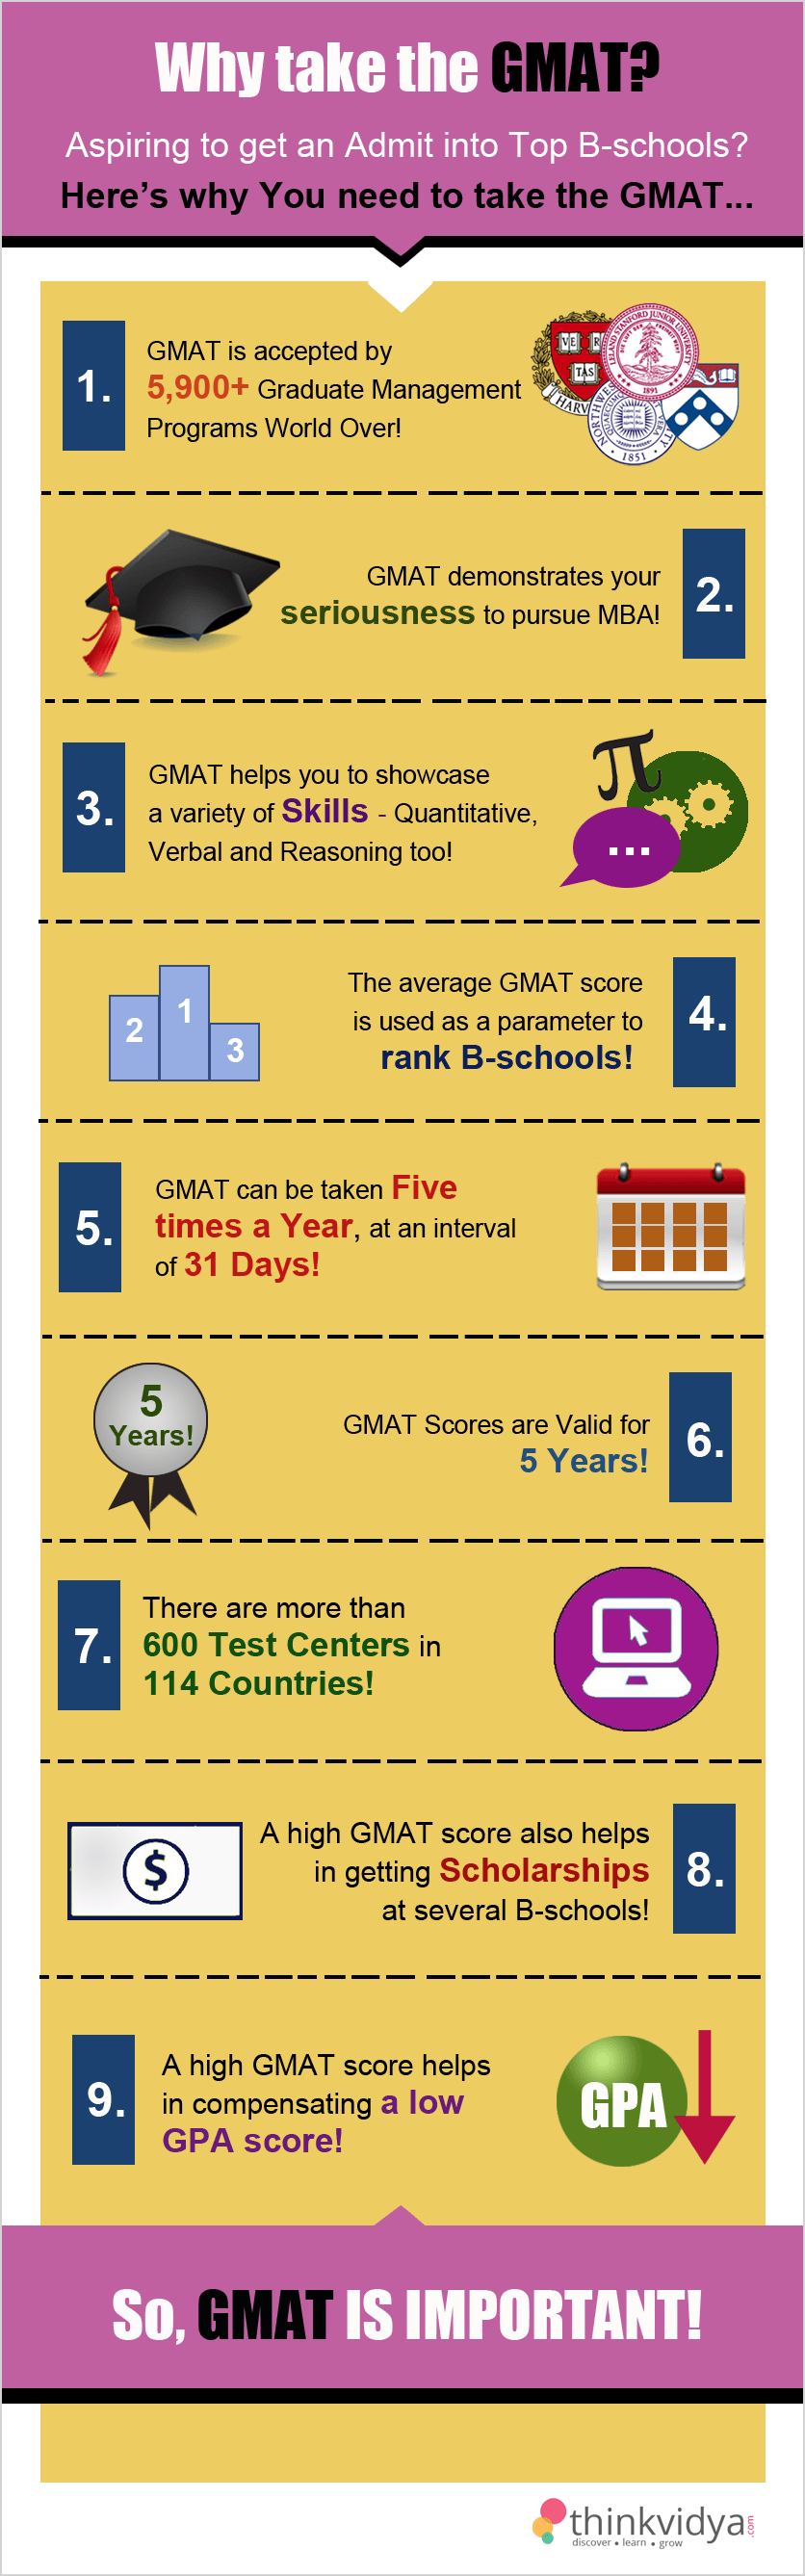 Why take the GMAT?